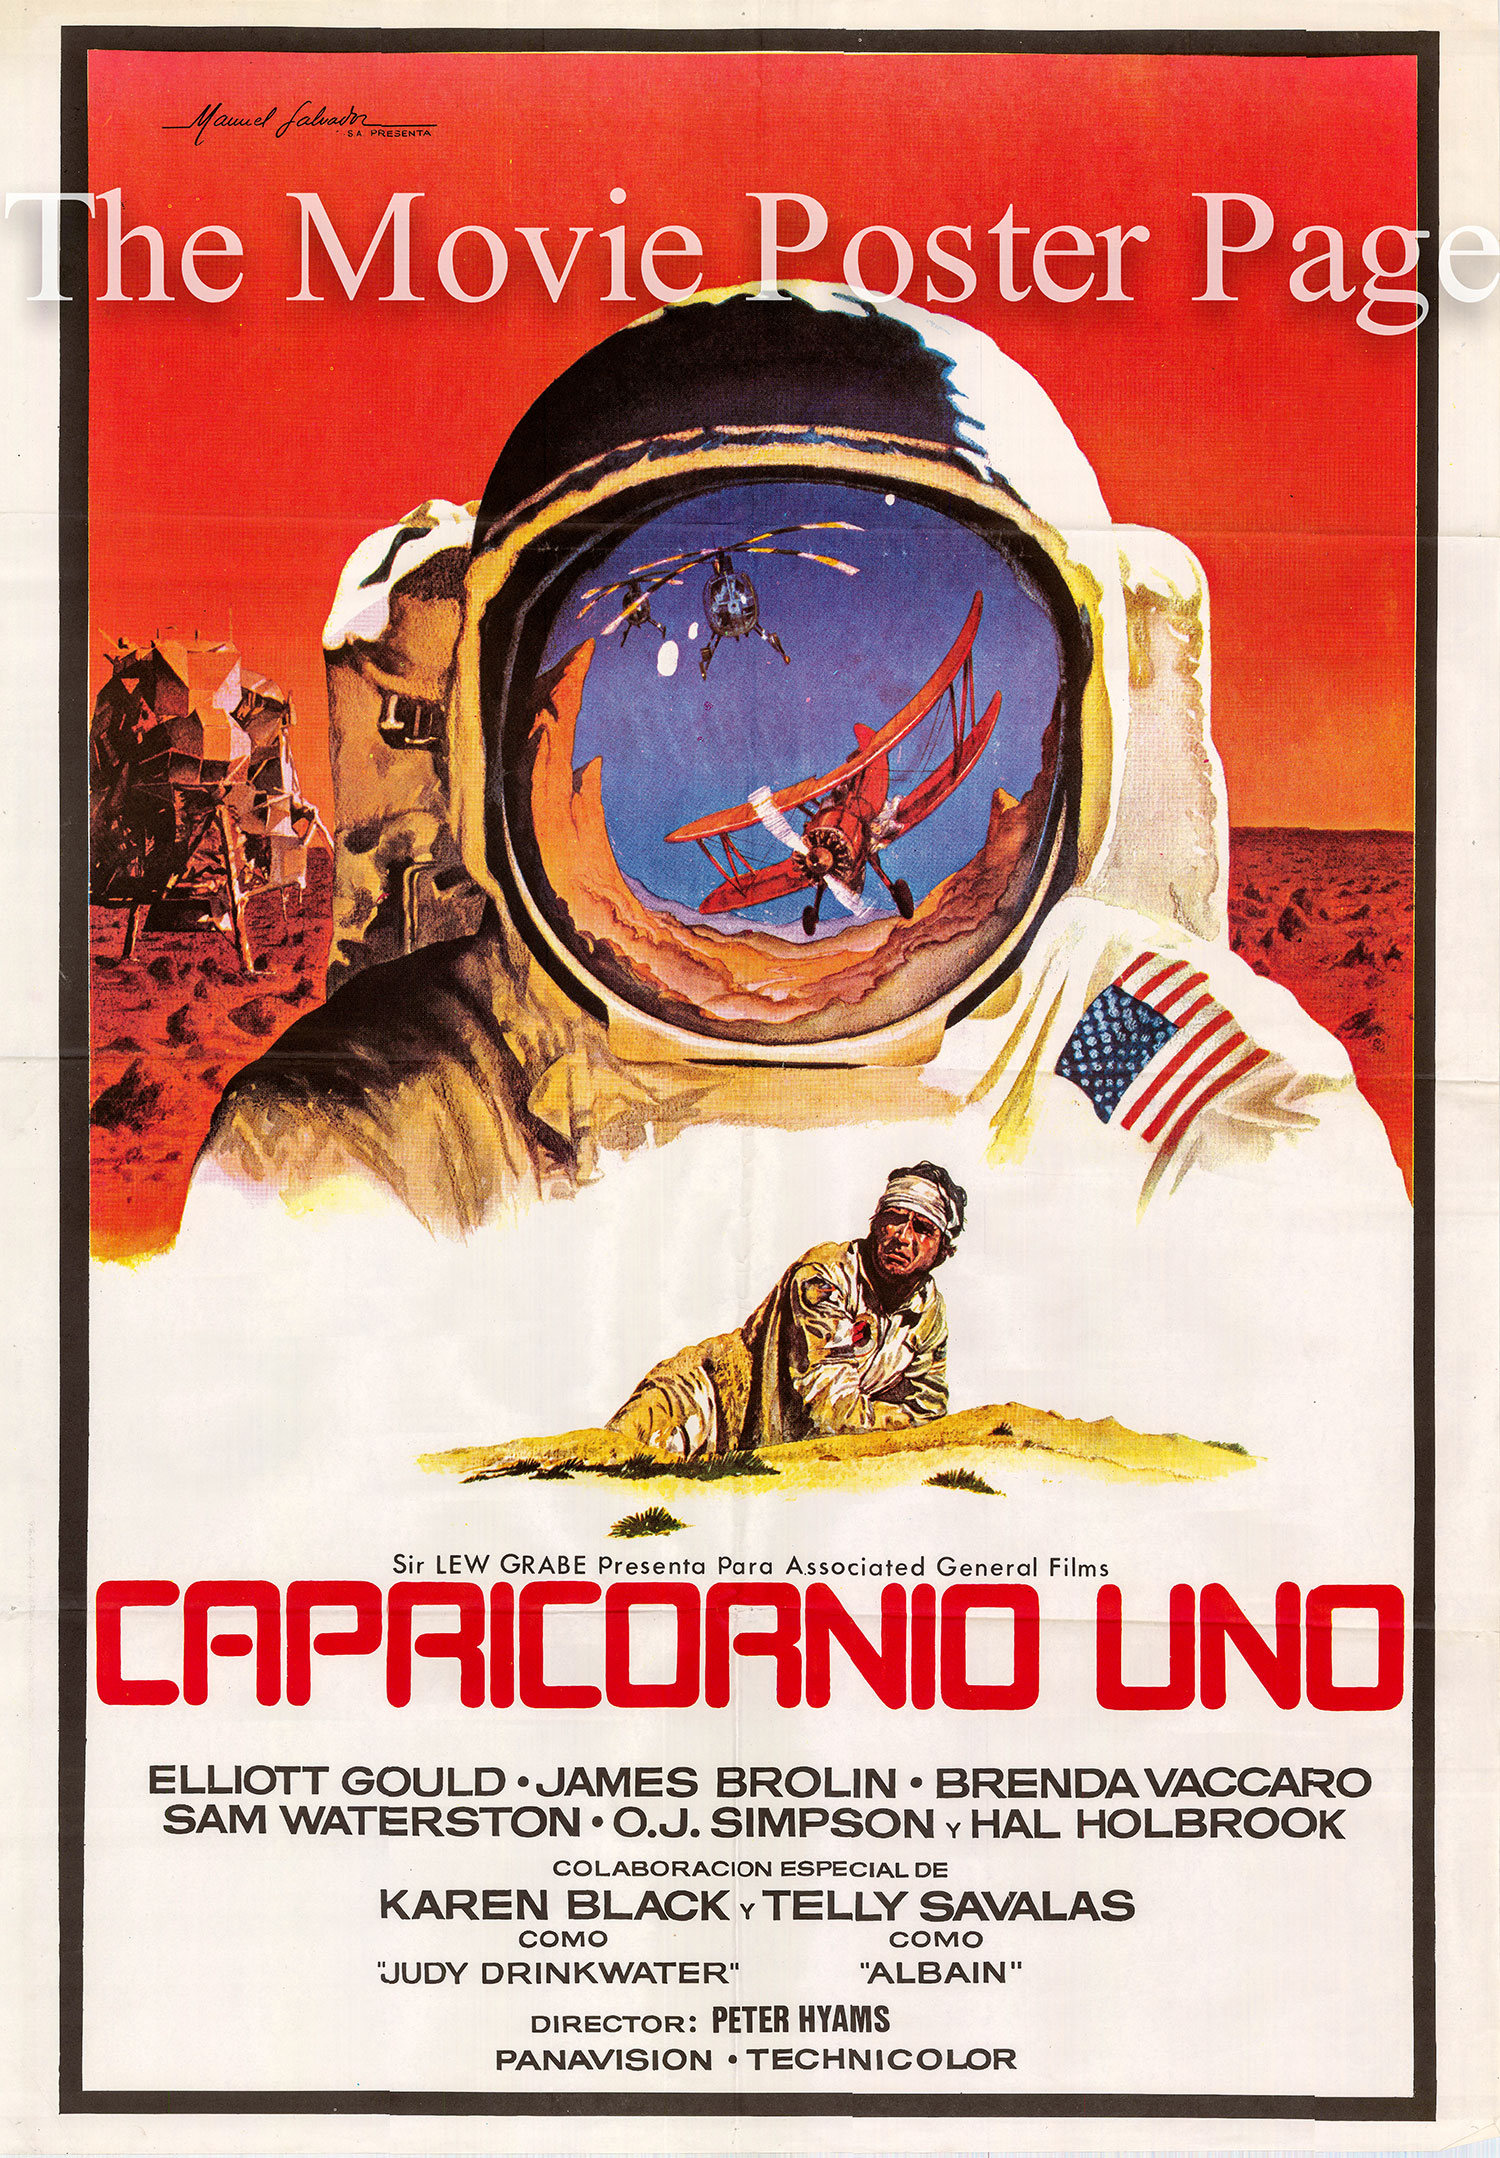 Pictured is a Spanish one-sheet poster for the 1978 Peter Hyams film Capricorn One starring Elliott Gould.